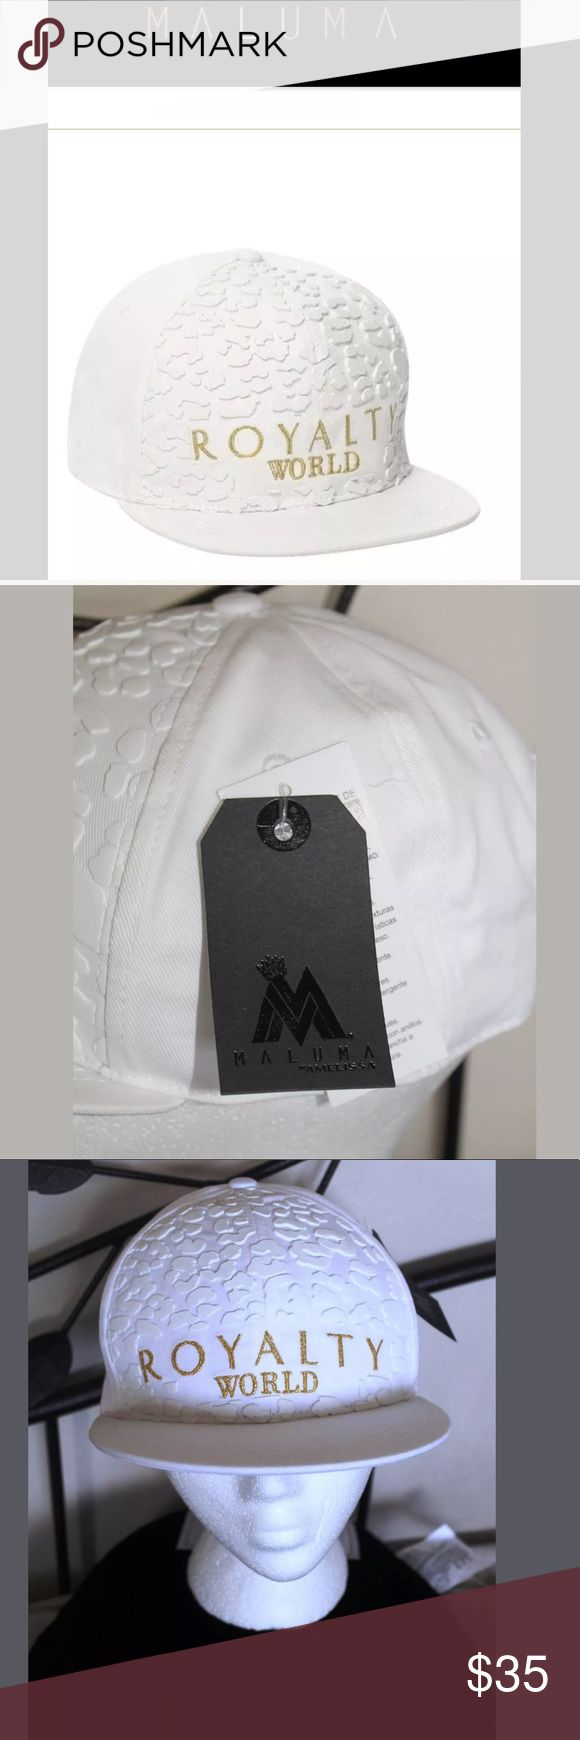 Rare original MALUMA hot Colombian singer cap hat RARE ORIGINAL AUTHENTHIC MALE COLOMBIAN MALE SINGER MALUMA AS SEEN ON HIM IN PICTURES AND EEVERYWHERE VERY SEXY A TOTAL MUST HAVE FOR MALUMA FANS DON'T MISS OUT THIS ITEM HARD HARD TO OBTAIN ROYALTY WORLD GOLD EMBROIDERED ANIMAL 3D PRINT CAP HAT MALUMA  BY AMELISSA ORIGINAL PRODUCT NOT SOLD IN THE USA!! ONLY SOLD IN COLOMBIA - HARD TO FIND PURCHASED JUST TO OFFER @ GREAT LOW PRICE WHITE WITH 3D ANIMAL PRINT TEXTURES AND ROYALY WORLD GOLD…